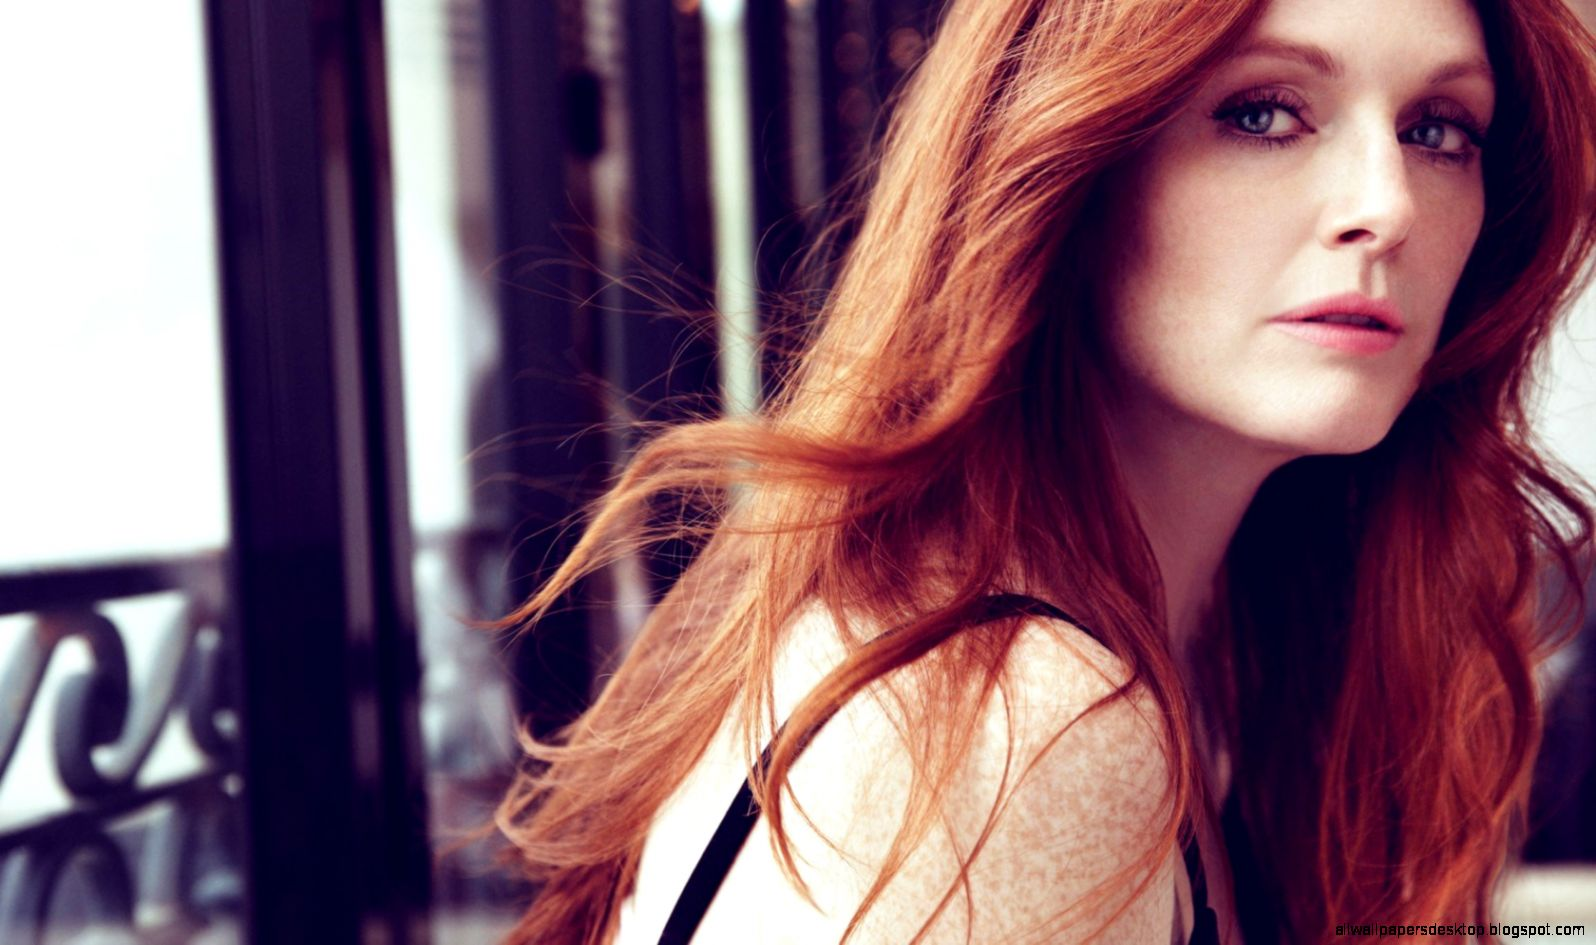 Redhead Girl Actress Jessica Chastain 6975445